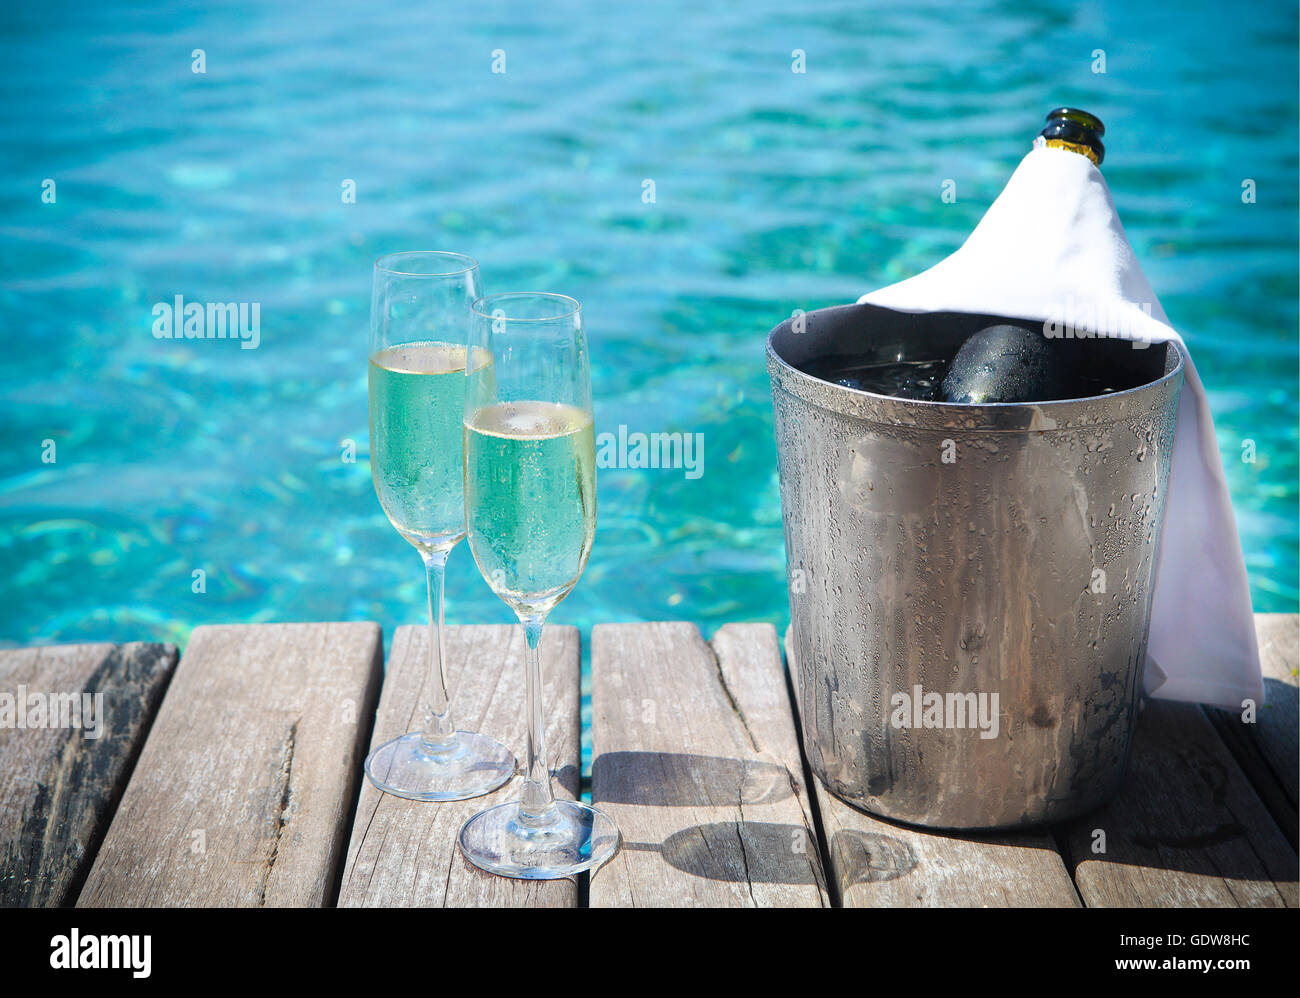 Champagne Bottle In Ice Bucket And Champagne Glasses By Swimming Pool Stock Photo 111808296 Alamy